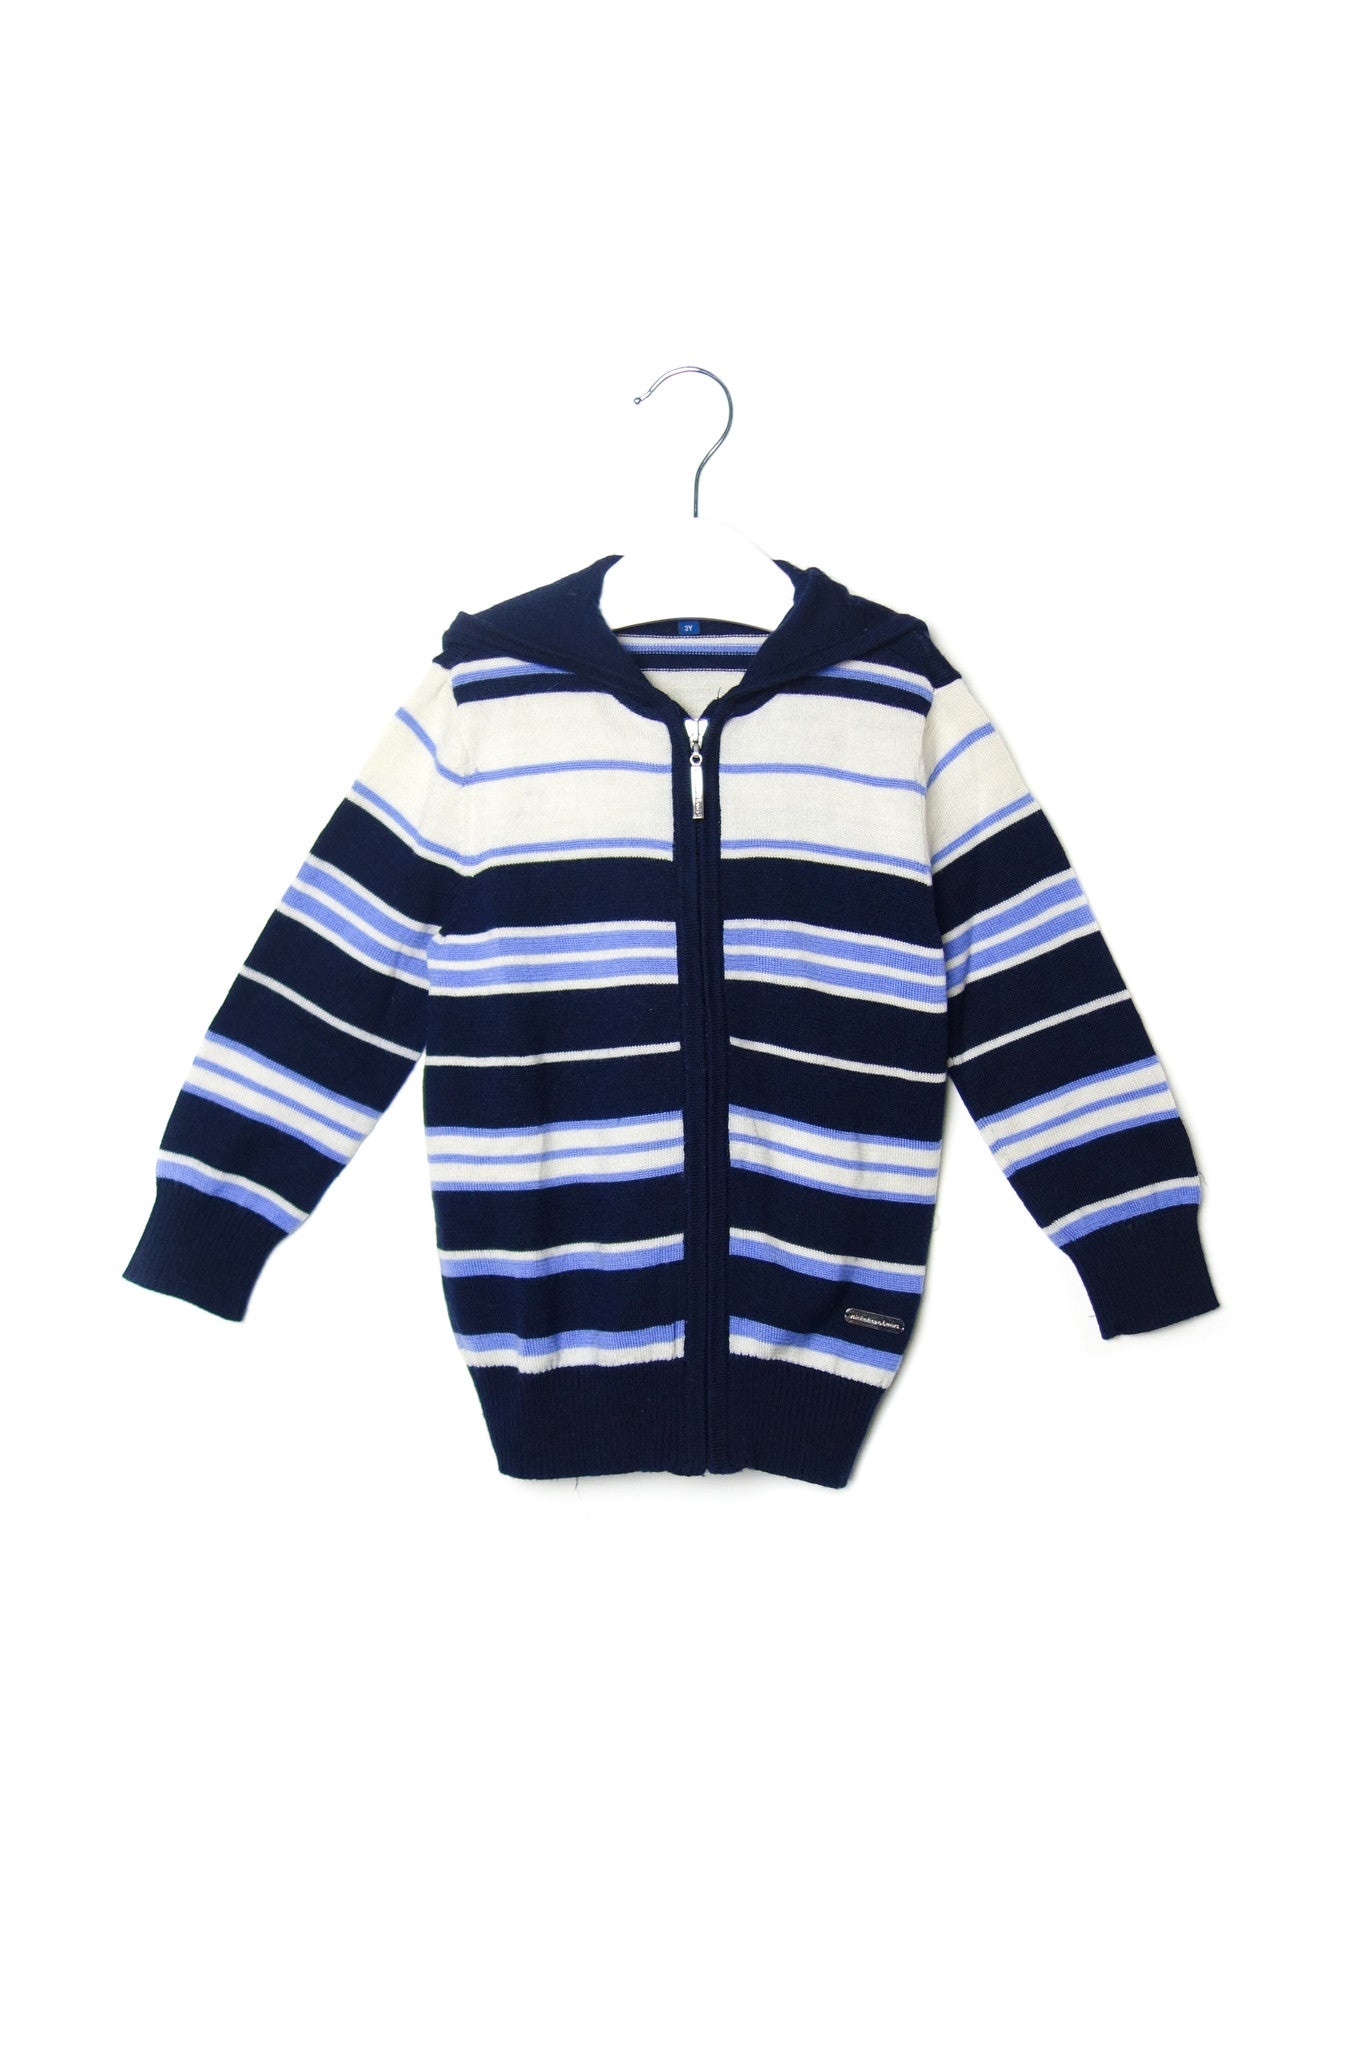 10001817 Nicholas & Bears Kids~Cardigan 3T at Retykle